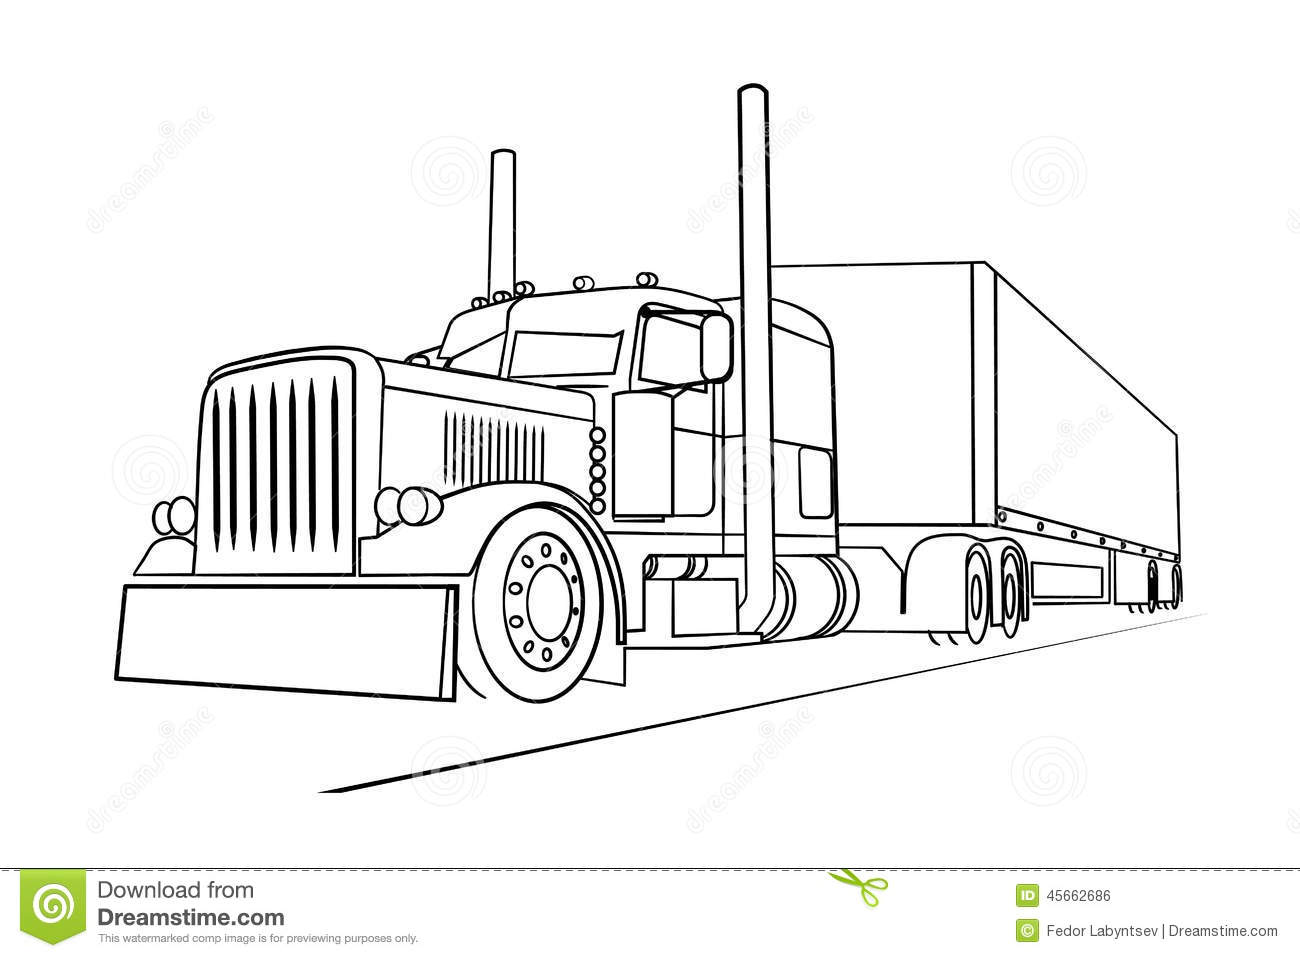 Homemade C ers as well 67835538111116872 as well Corn Harvest Sunset likewise Watch further Watch. on cool semi truck trailers